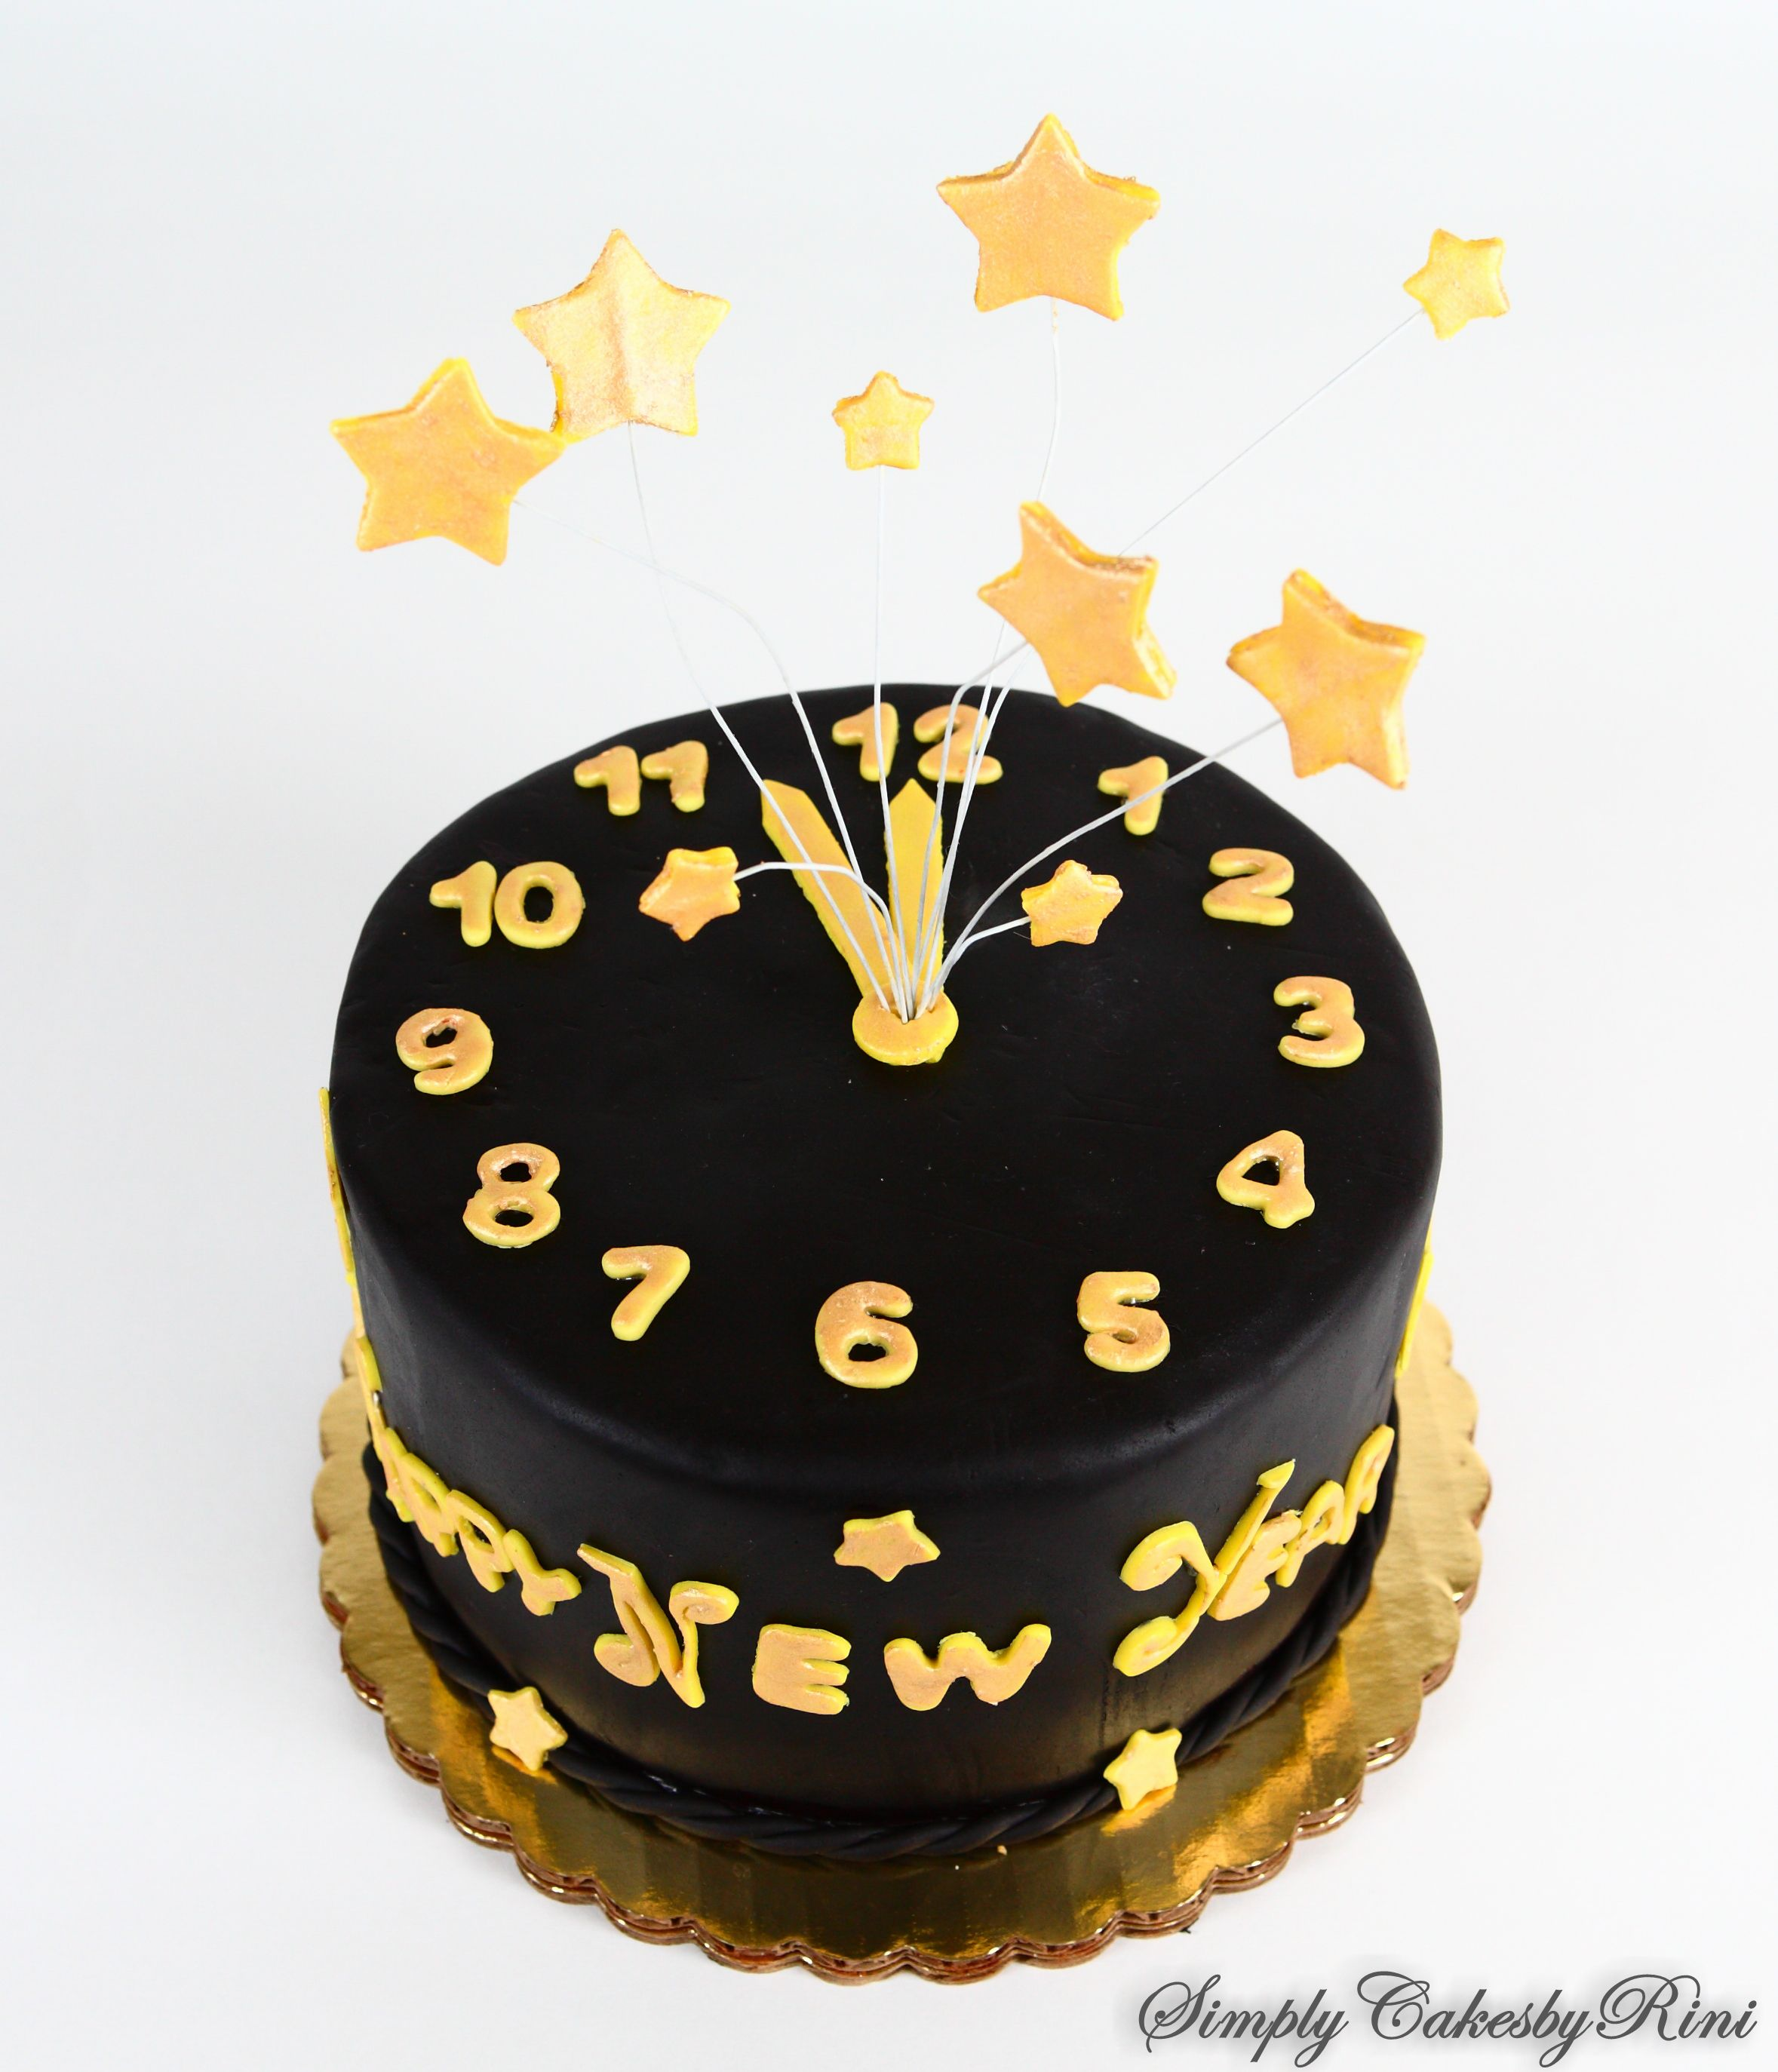 Happy New Year Cake With Images New Year S Cake Cake Food